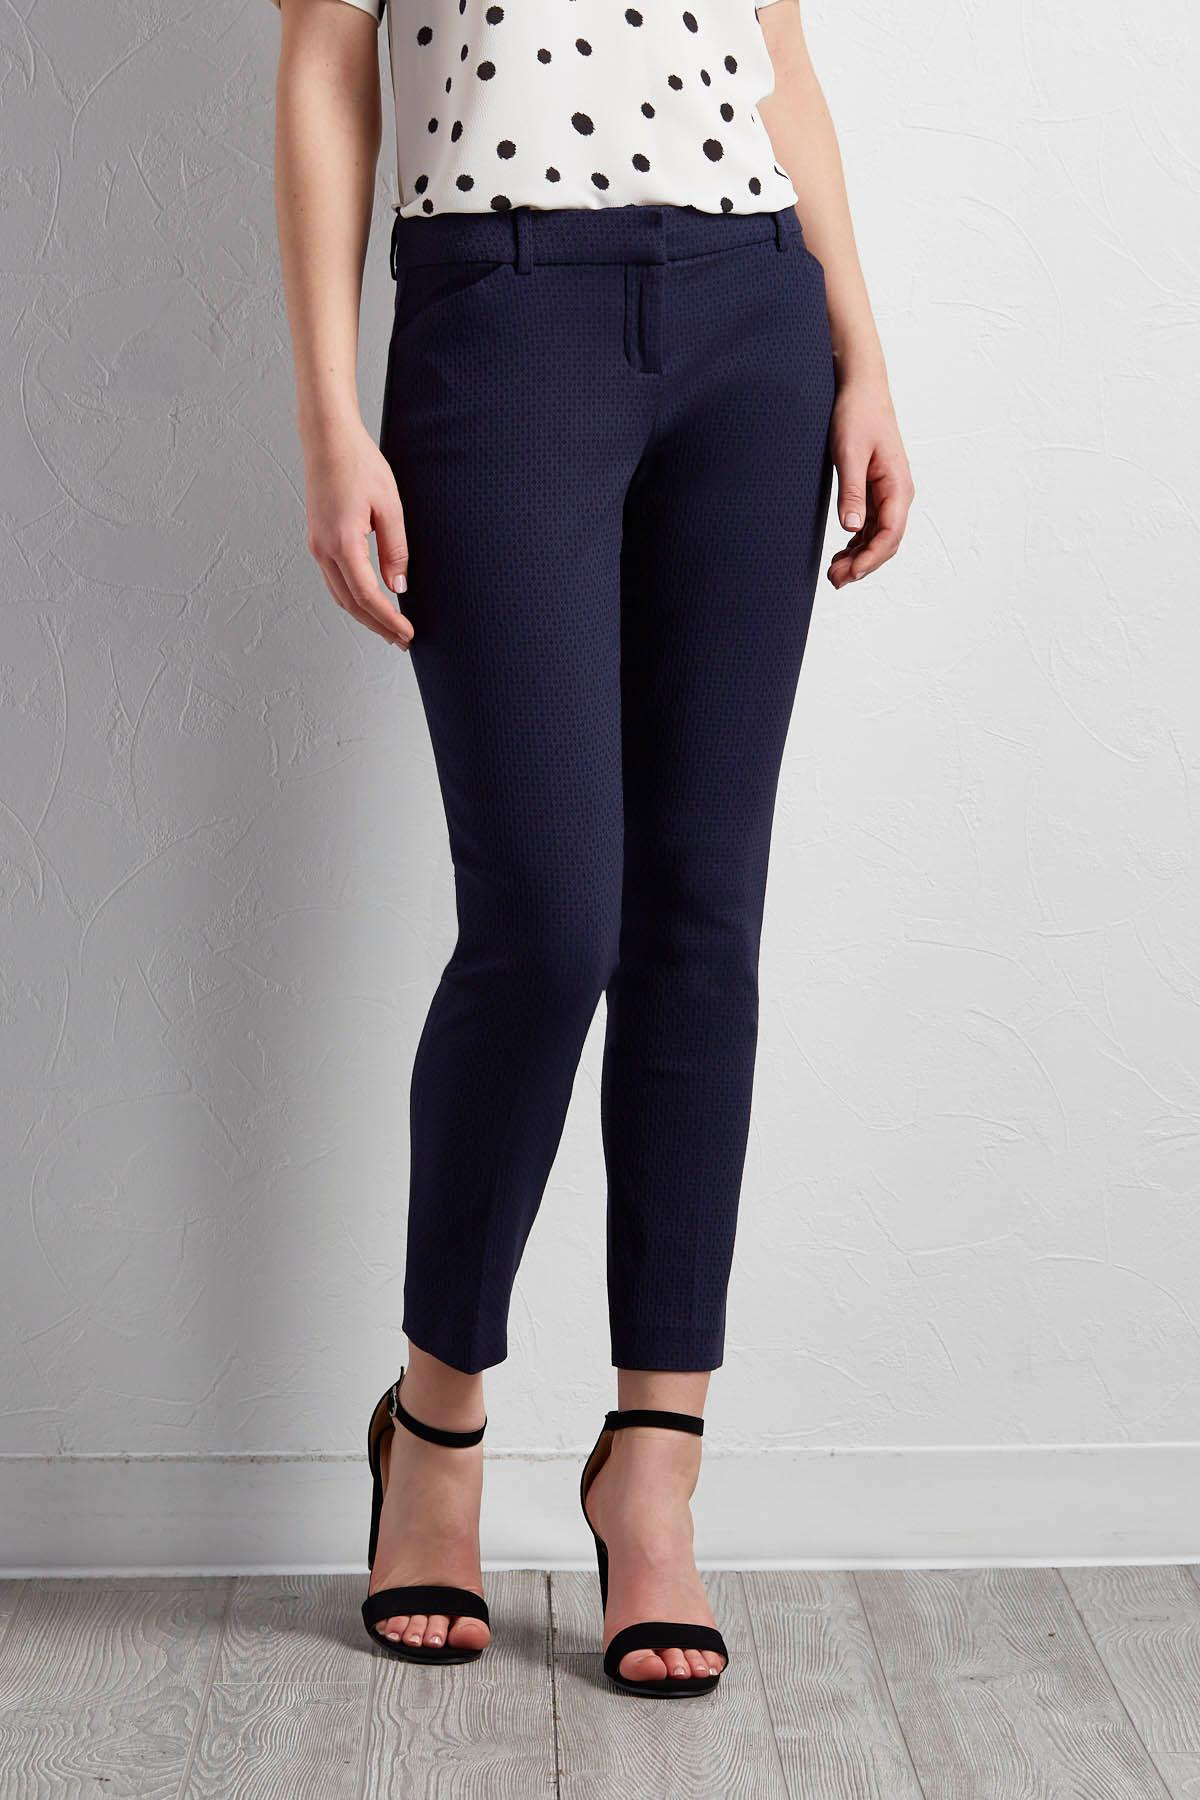 Honeycomb Textured Everyday Ankle Pants